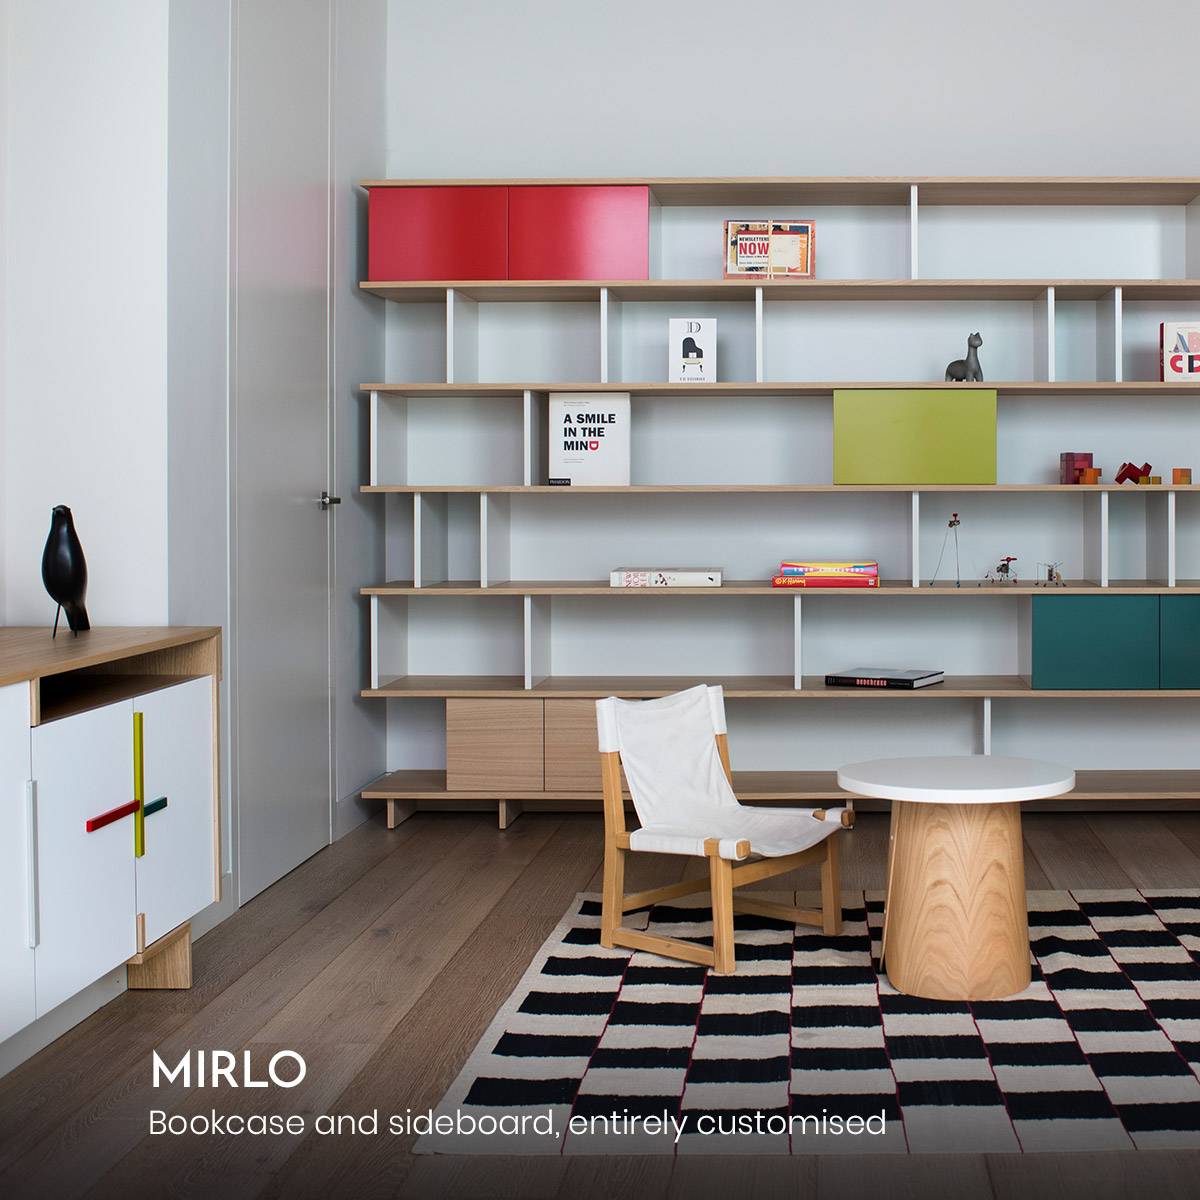 Mirlo, bookcase and sideboard, entirely customised